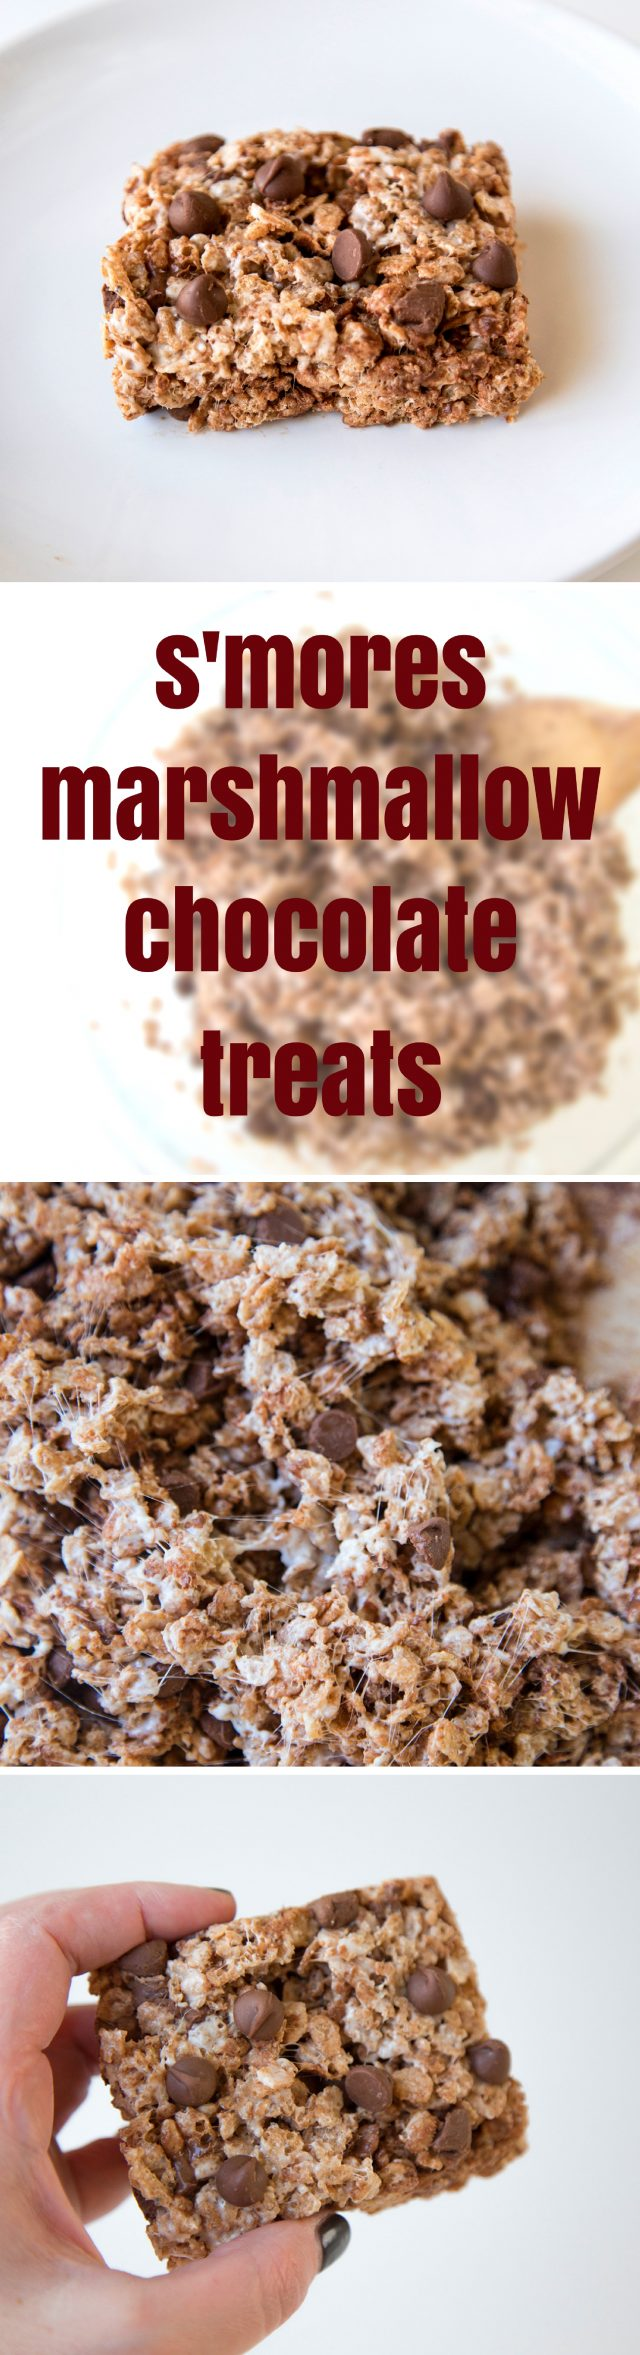 Cinnamon Pebbles S'mores Marshmallow and Chocolate Treats